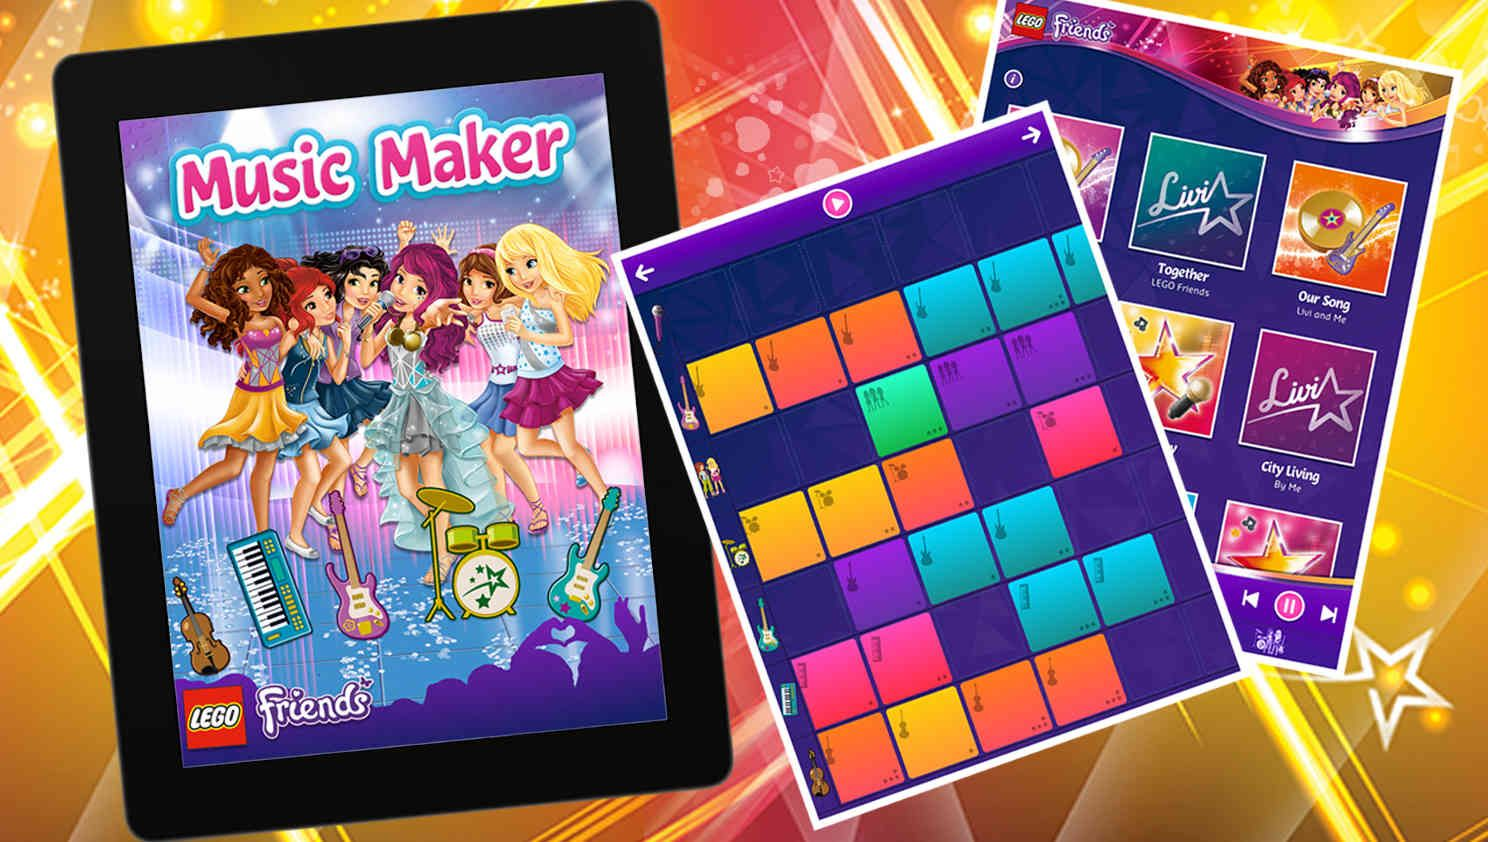 Music Maker App Games Lego Friends Legocom Friends Lego